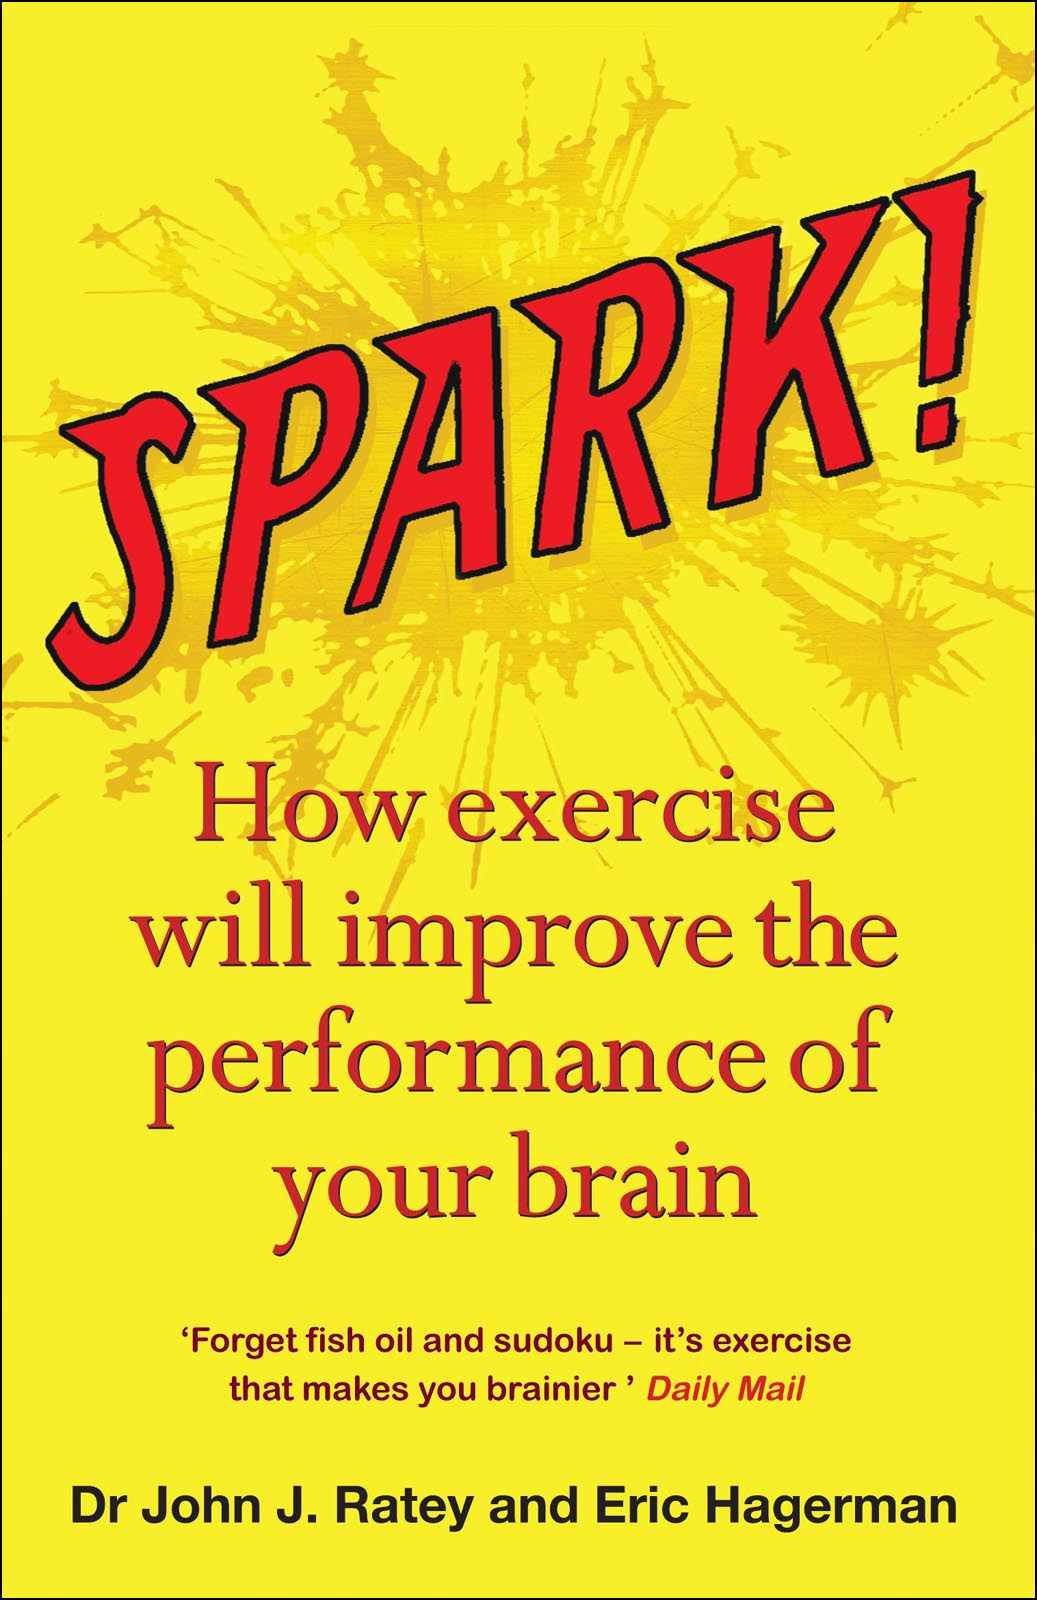 Spark! How Exercise will improve the performance of your brain